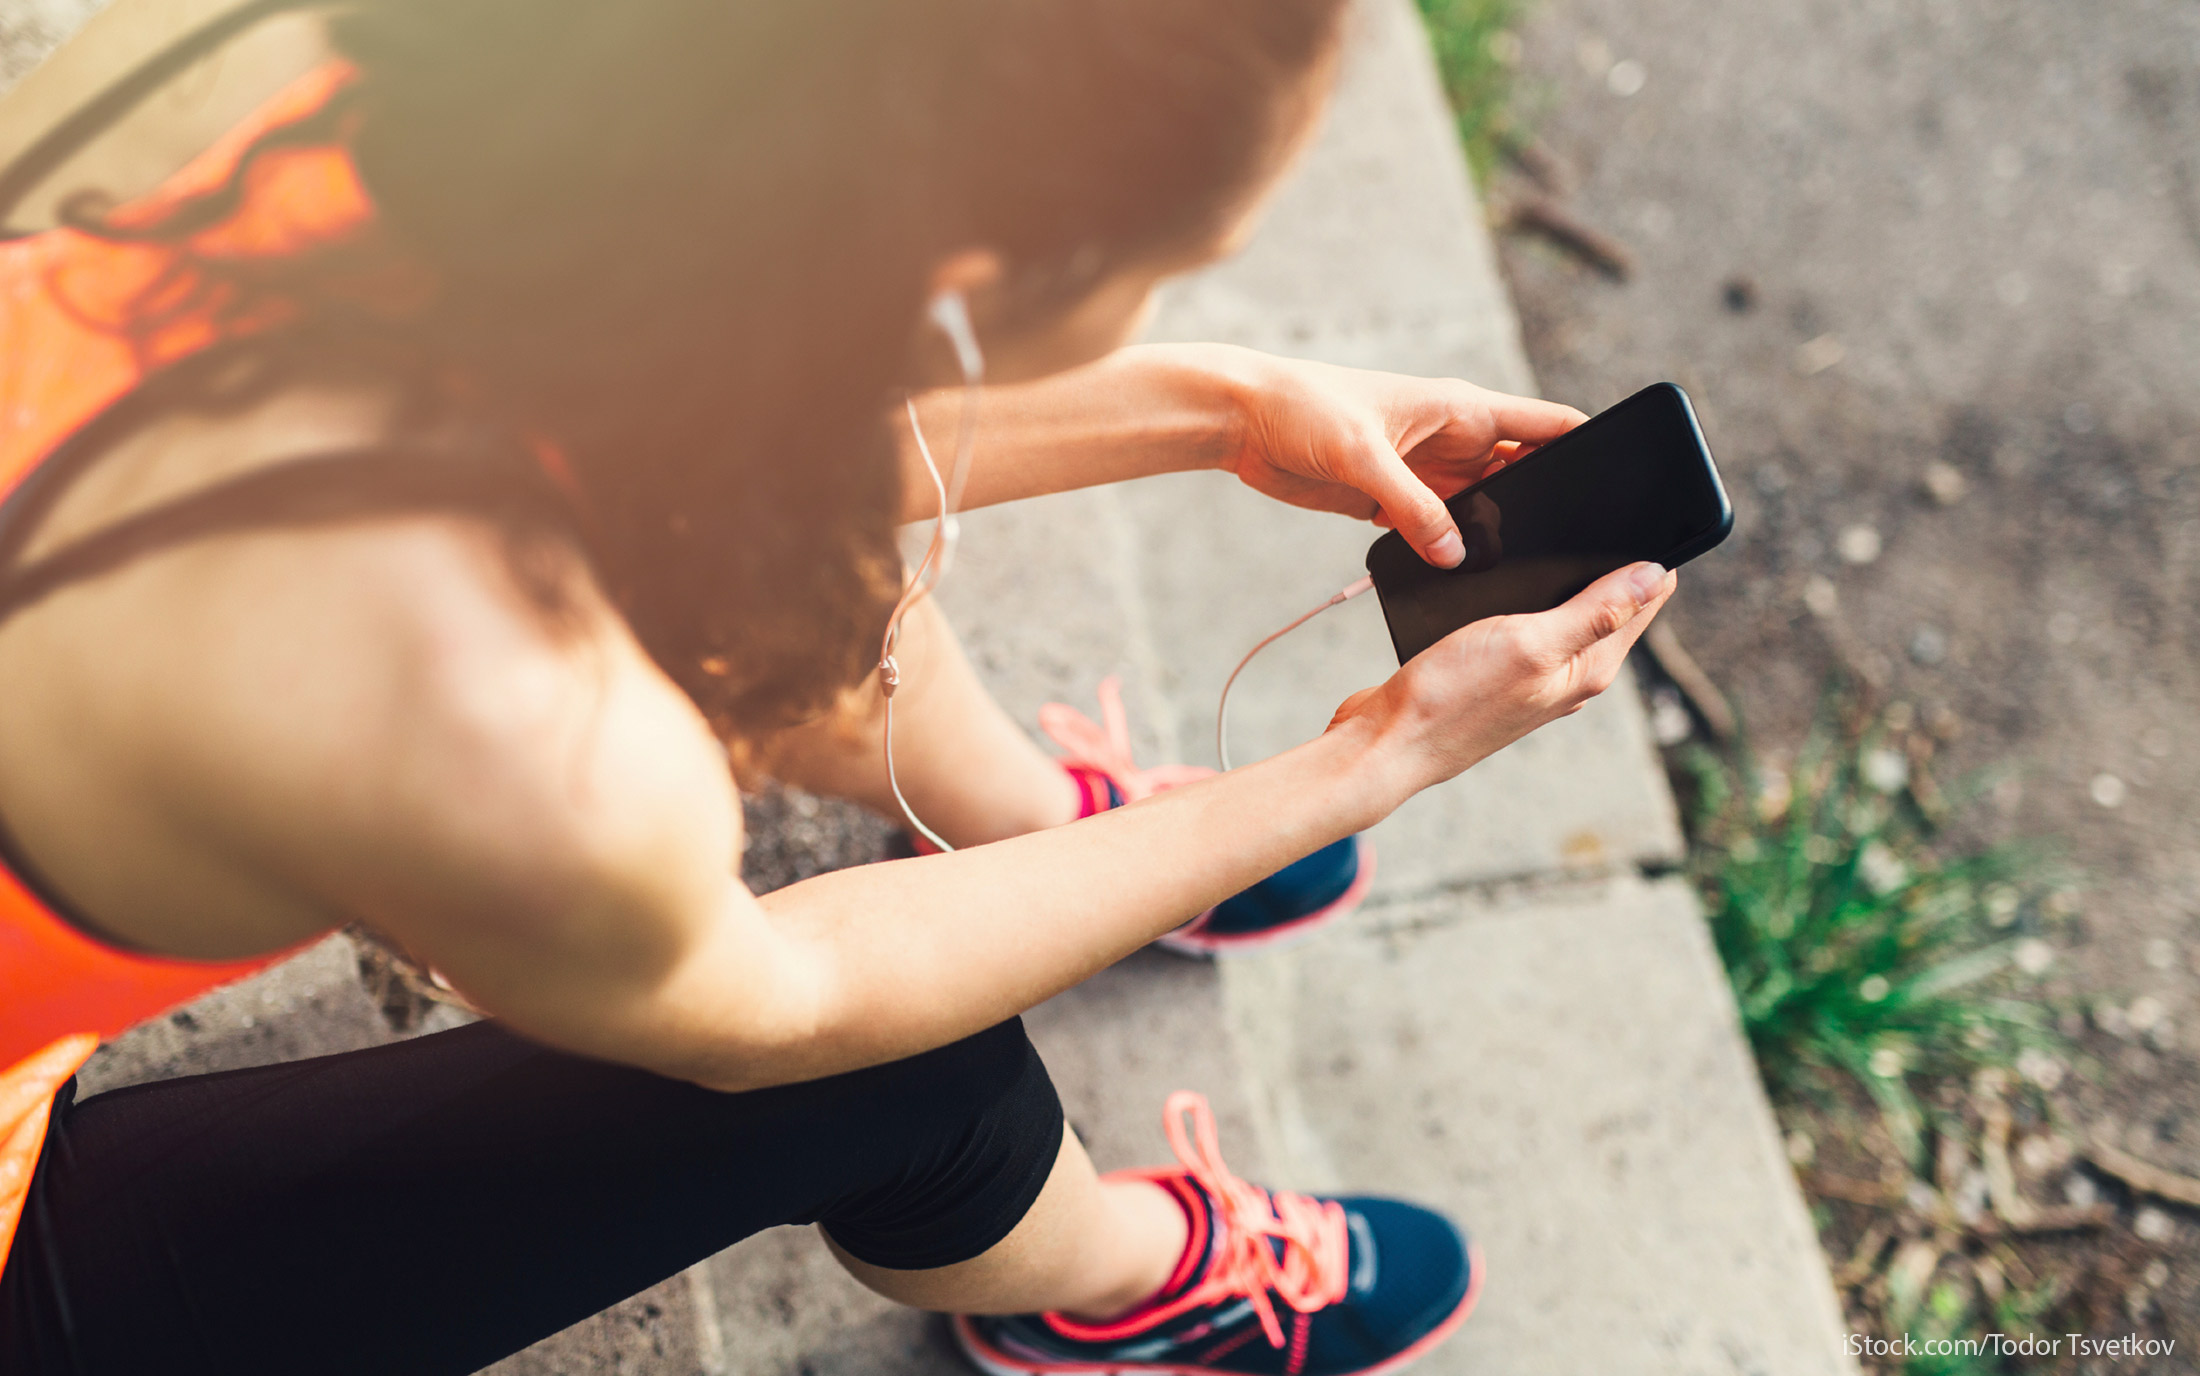 10 Cheap Fitness Apps to Replace Your Gym Membership